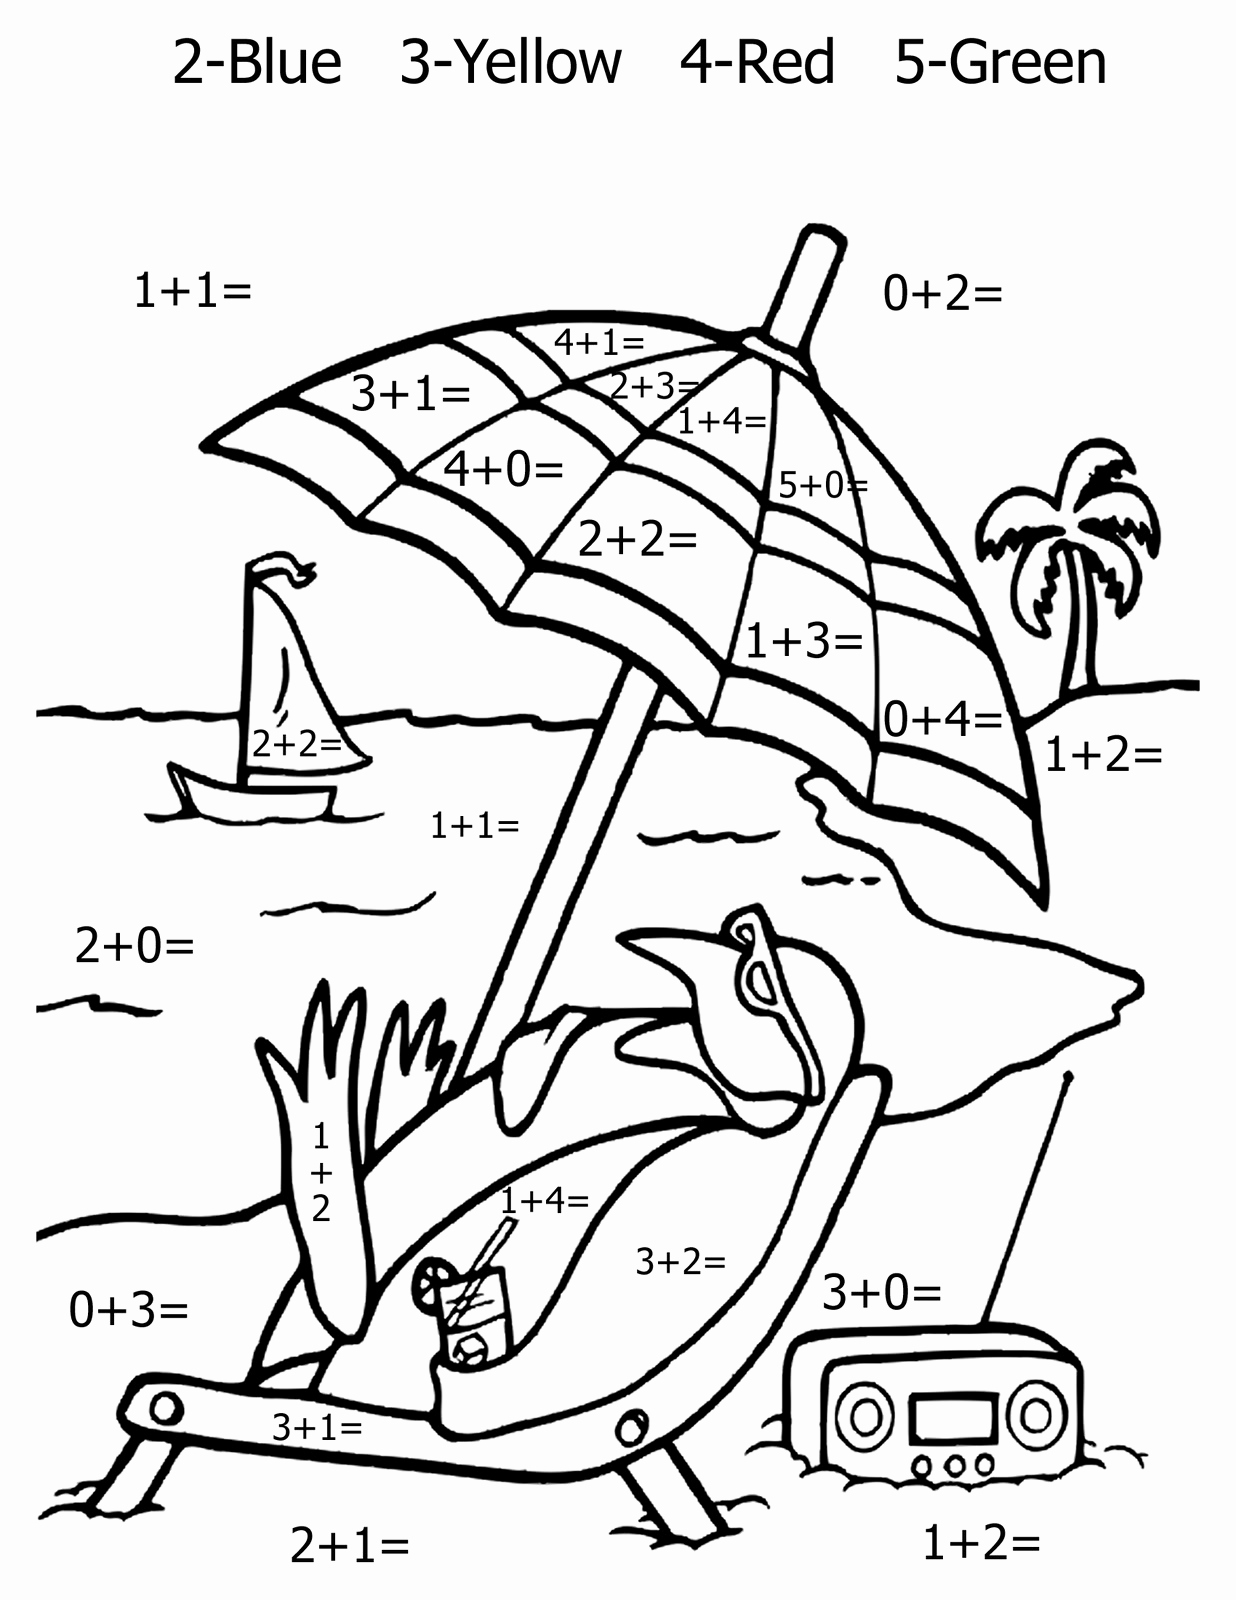 Addition Coloring Worksheets for Kindergarten Luxury Free Printable Math Coloring Pages for Kids Best